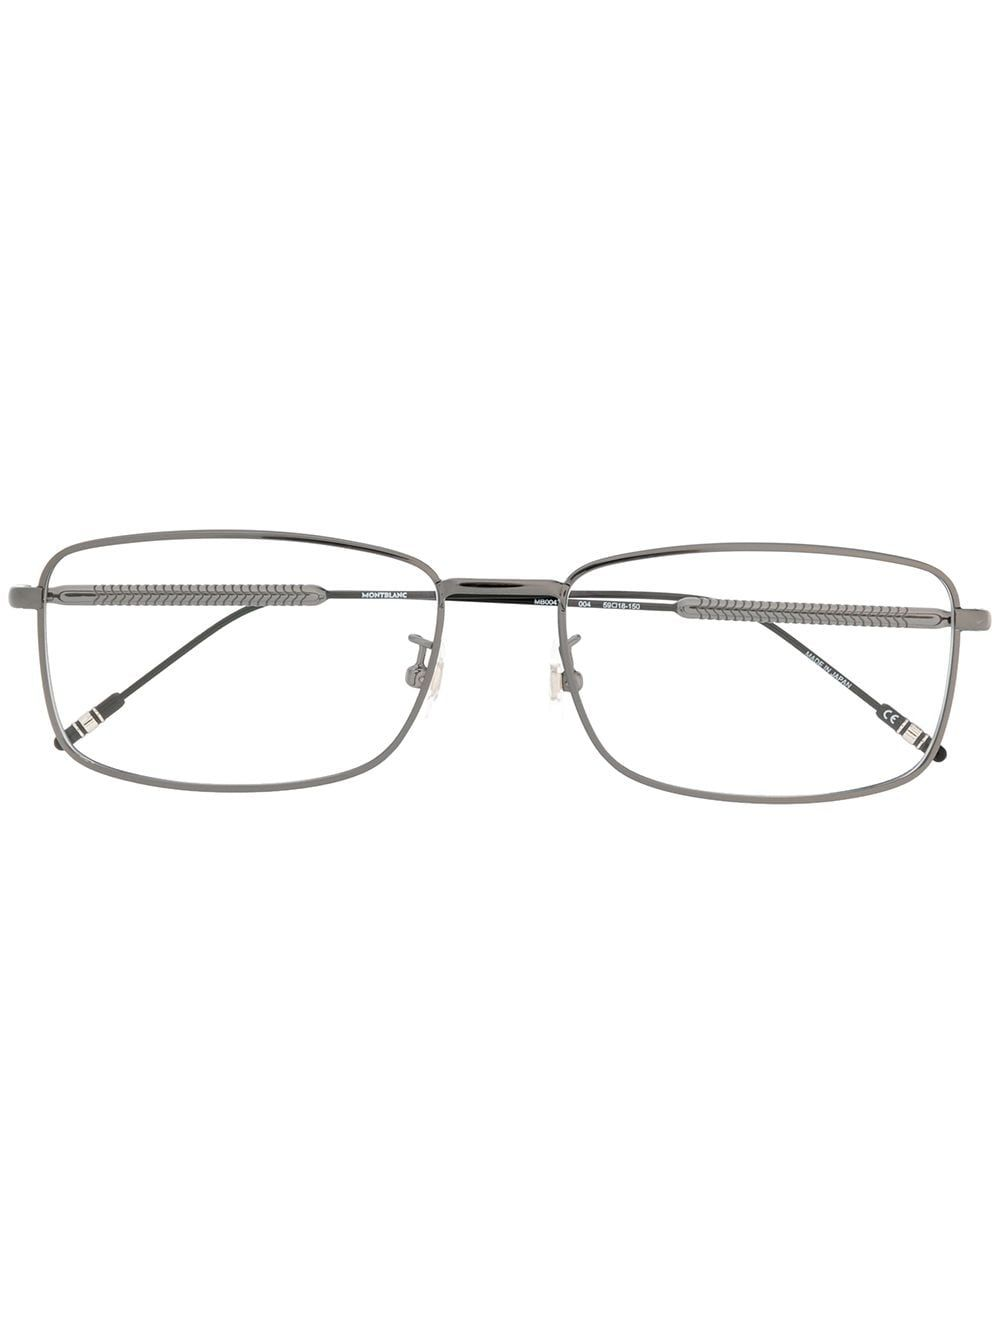 Black metal rectangular frame glasses from Montblanc featuring a textured design at the arms. This item is unisex.